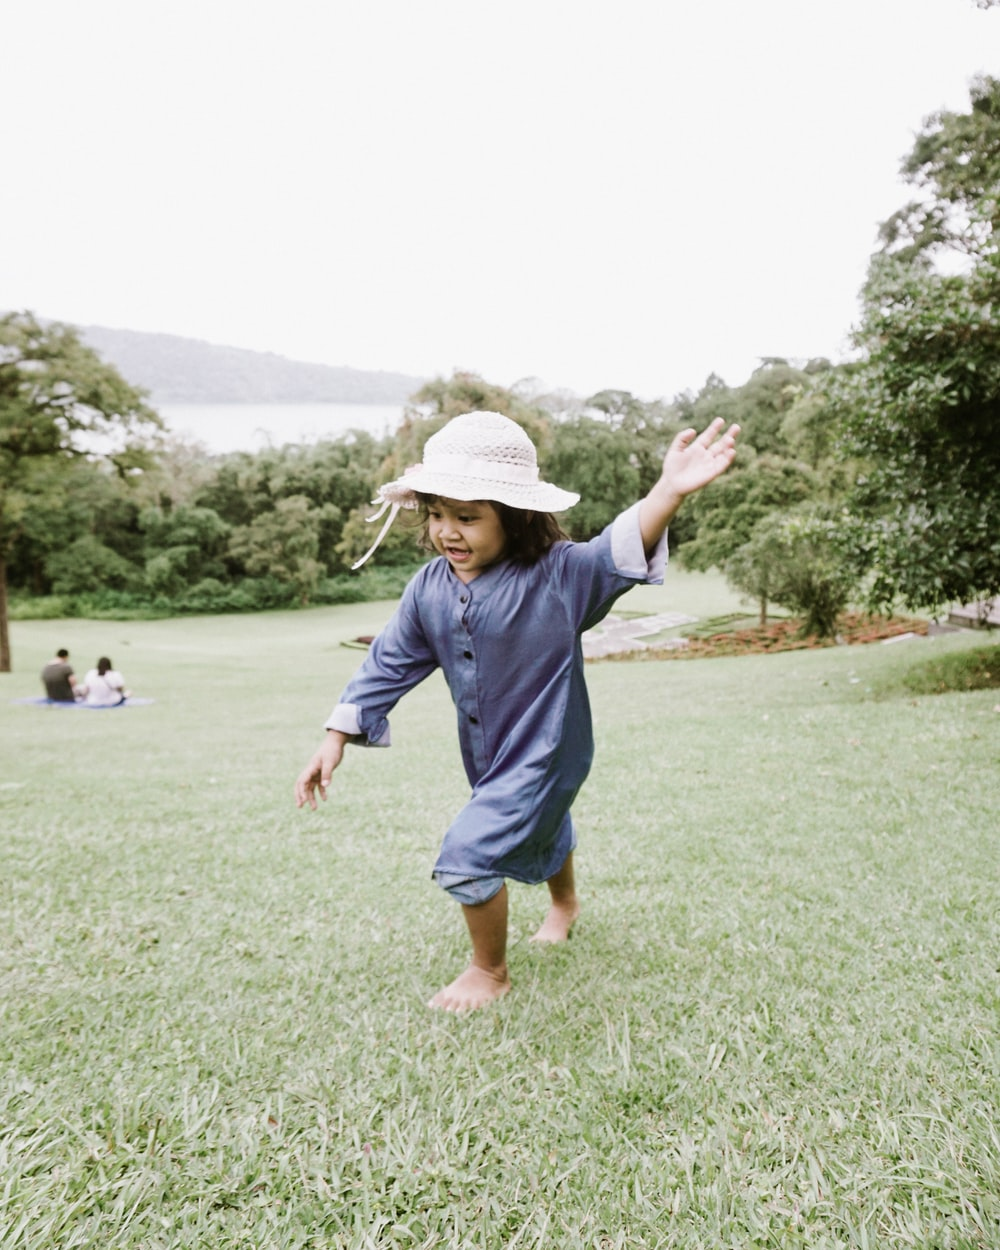 boy in blue t-shirt and blue shorts walking on green grass field during daytime